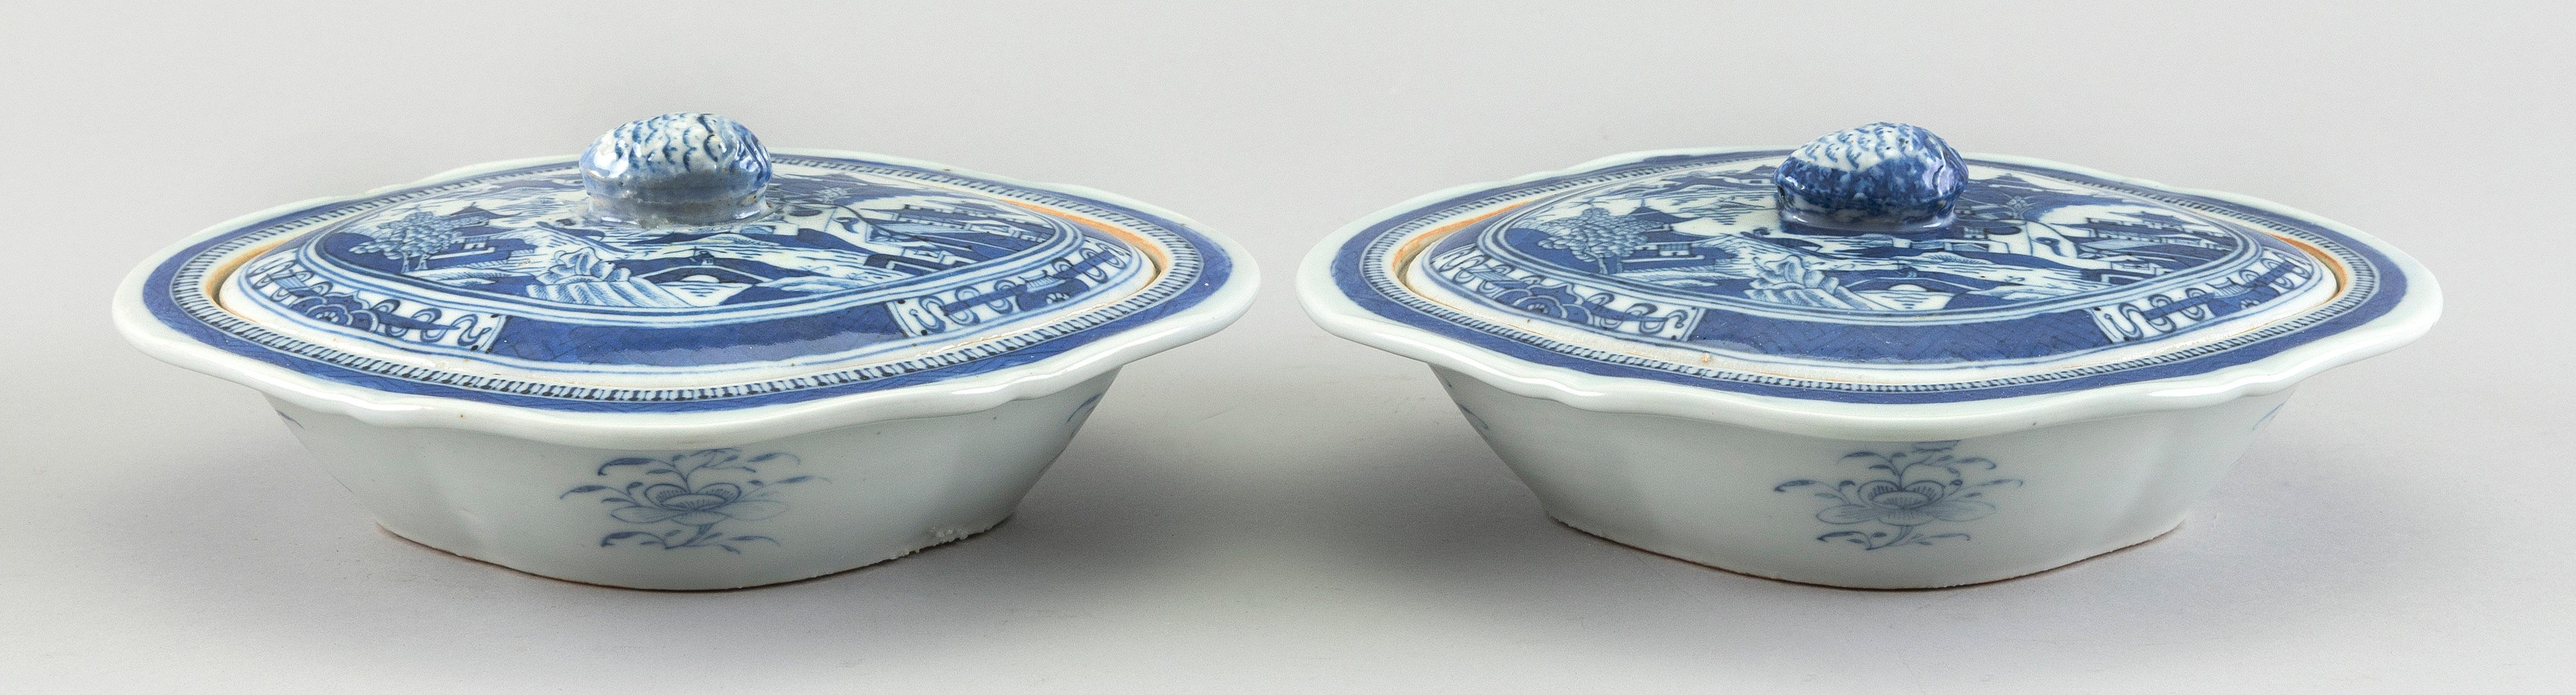 """PAIR OF CHINESE EXPORT NANKING PORCELAIN COVERED VEGETABLE DISHES 19th Century Heights 3.5"""". Lengths 9""""."""